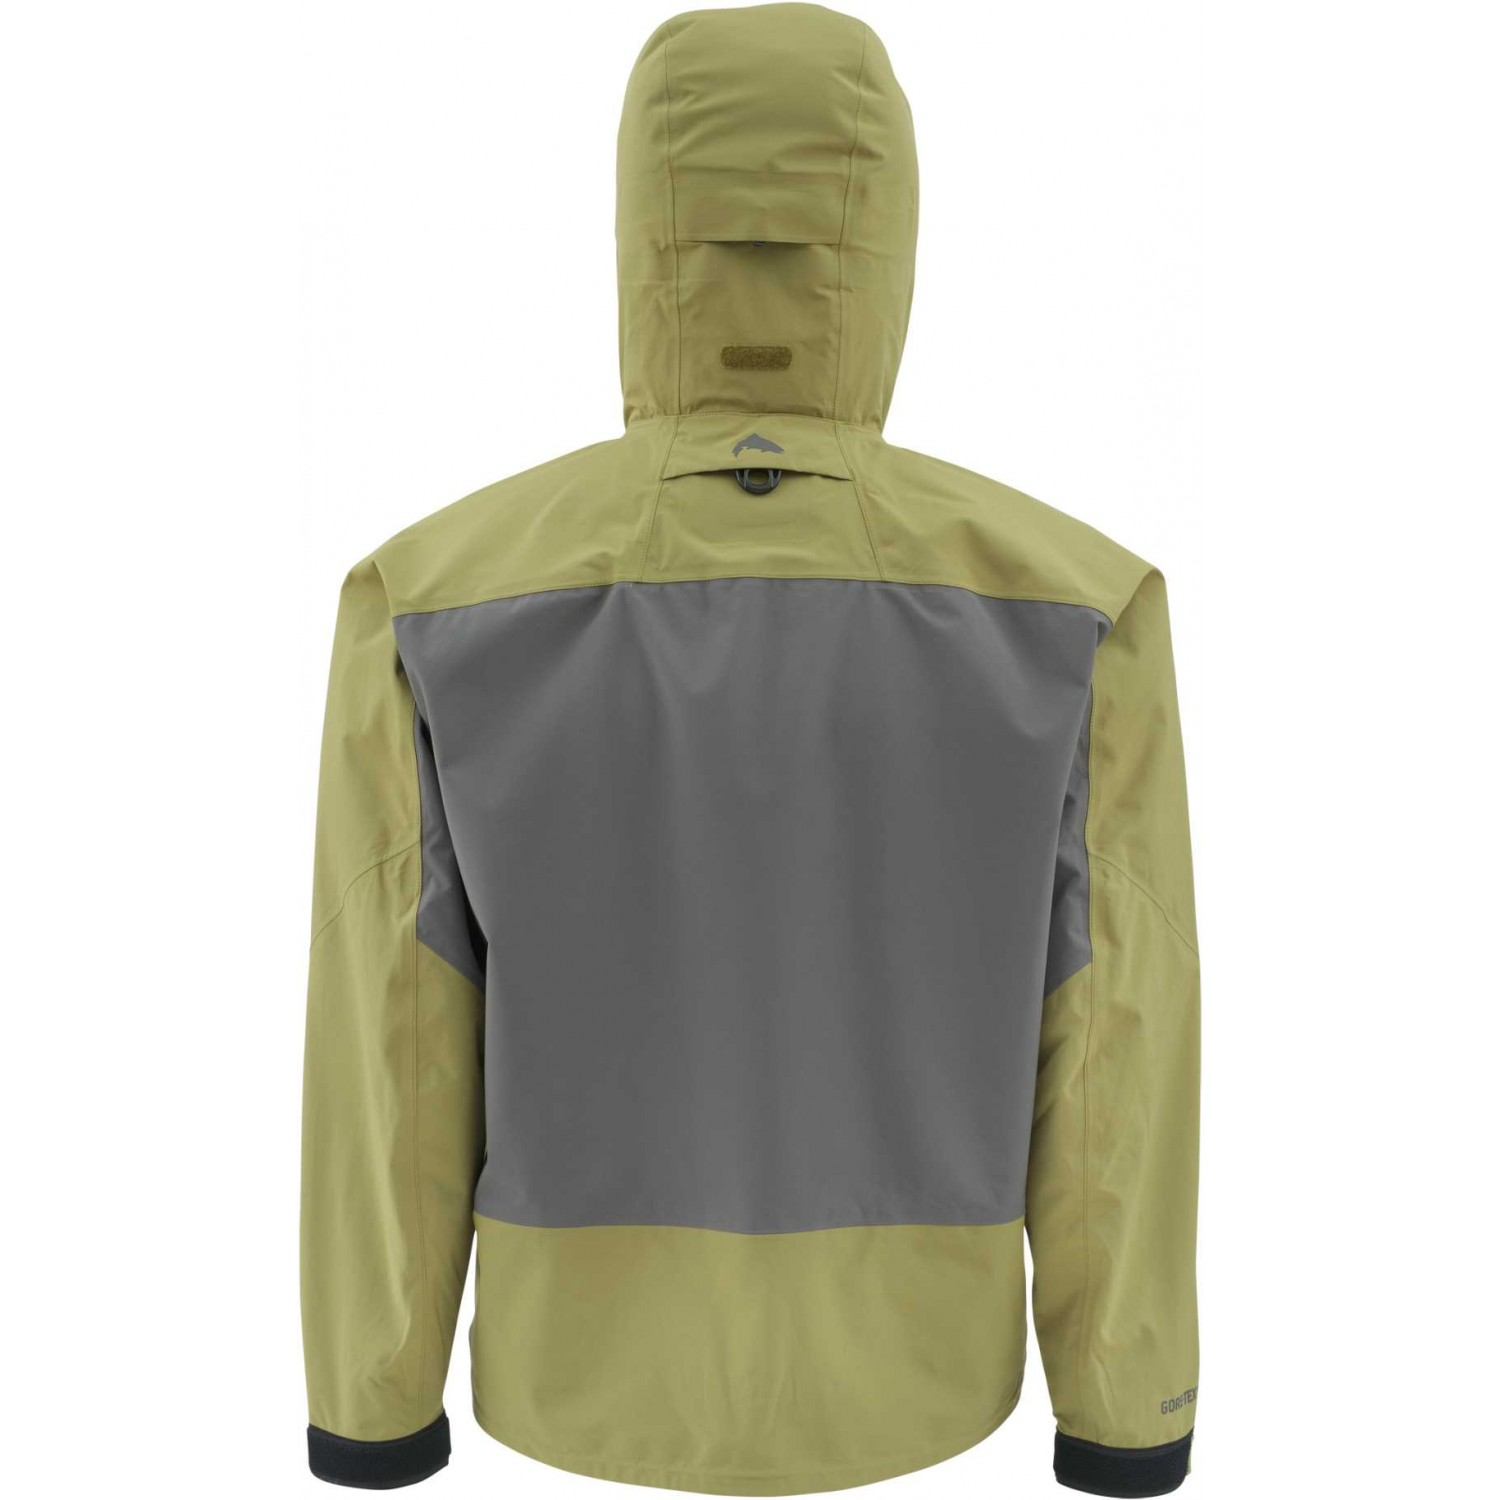 Simms G3 Guide Jacket Army Green